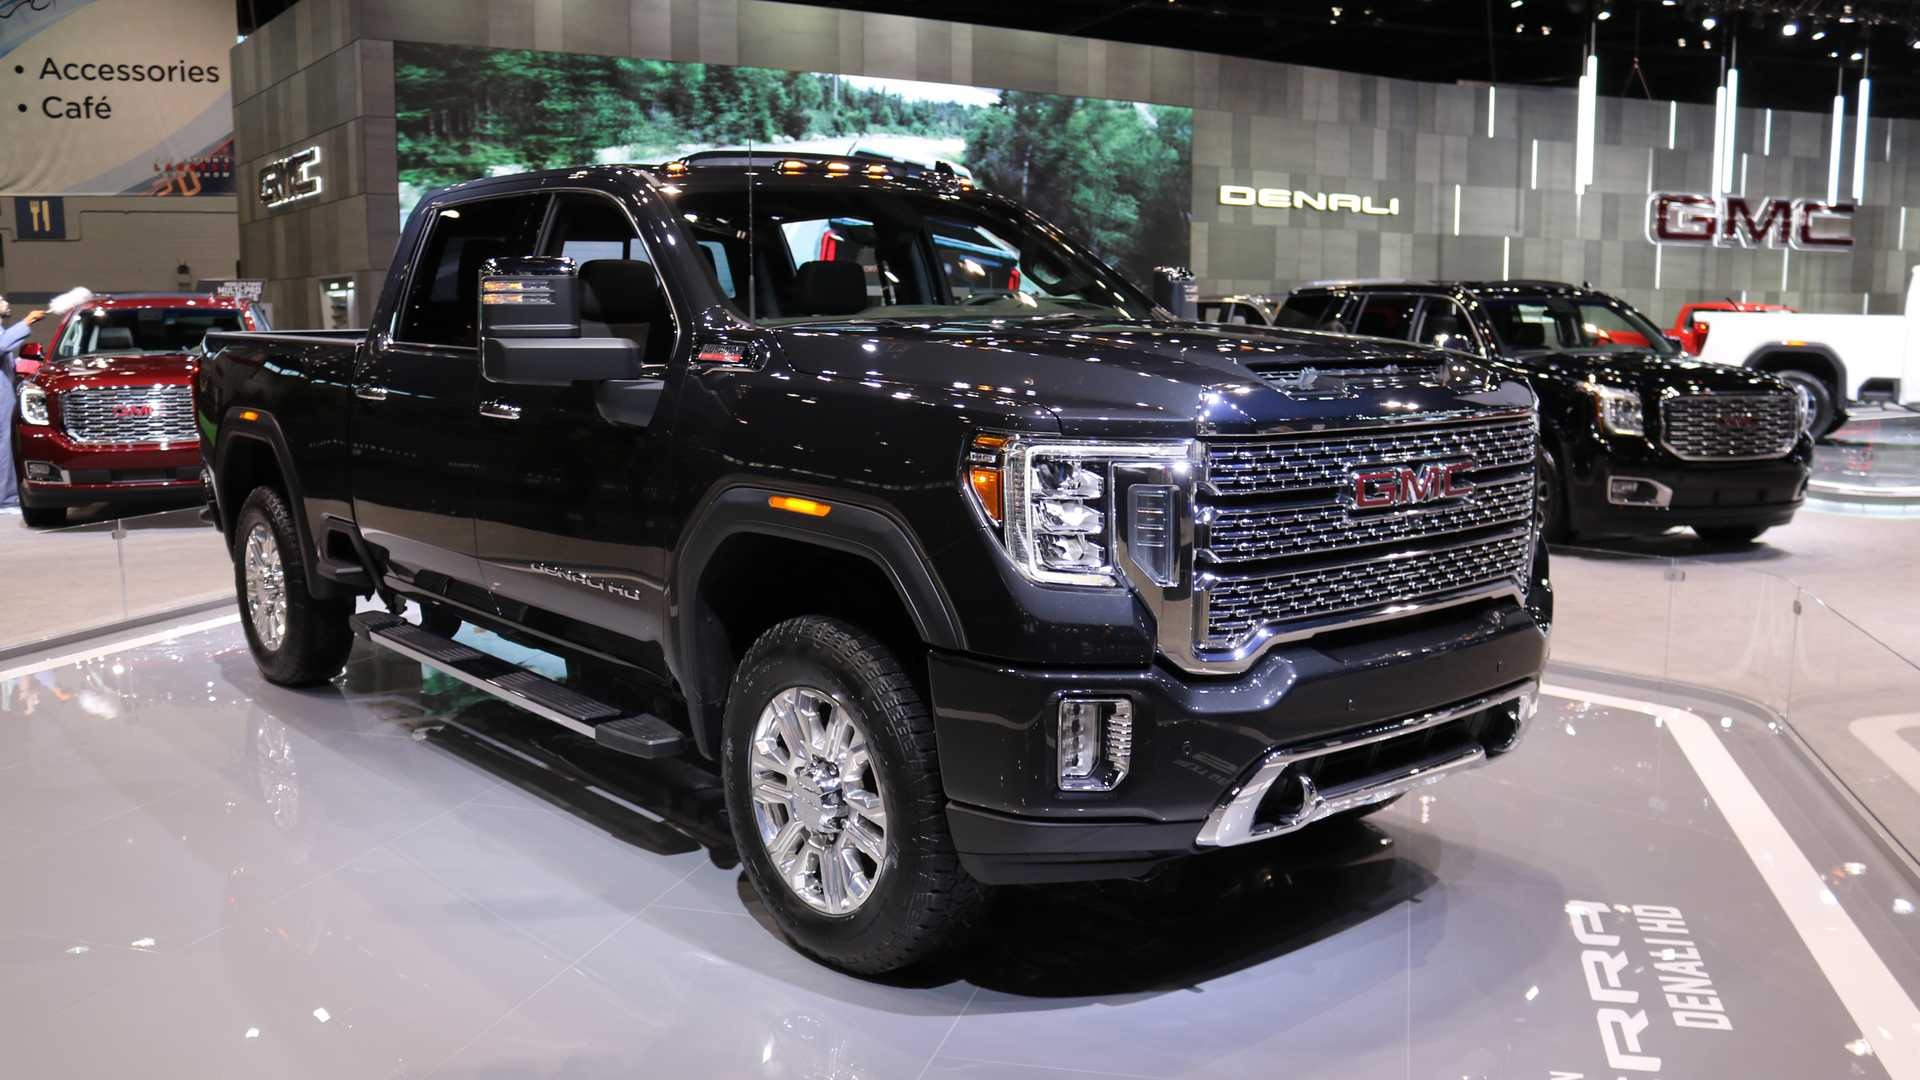 39 Best 2020 GMC Sierra Hd At4 History